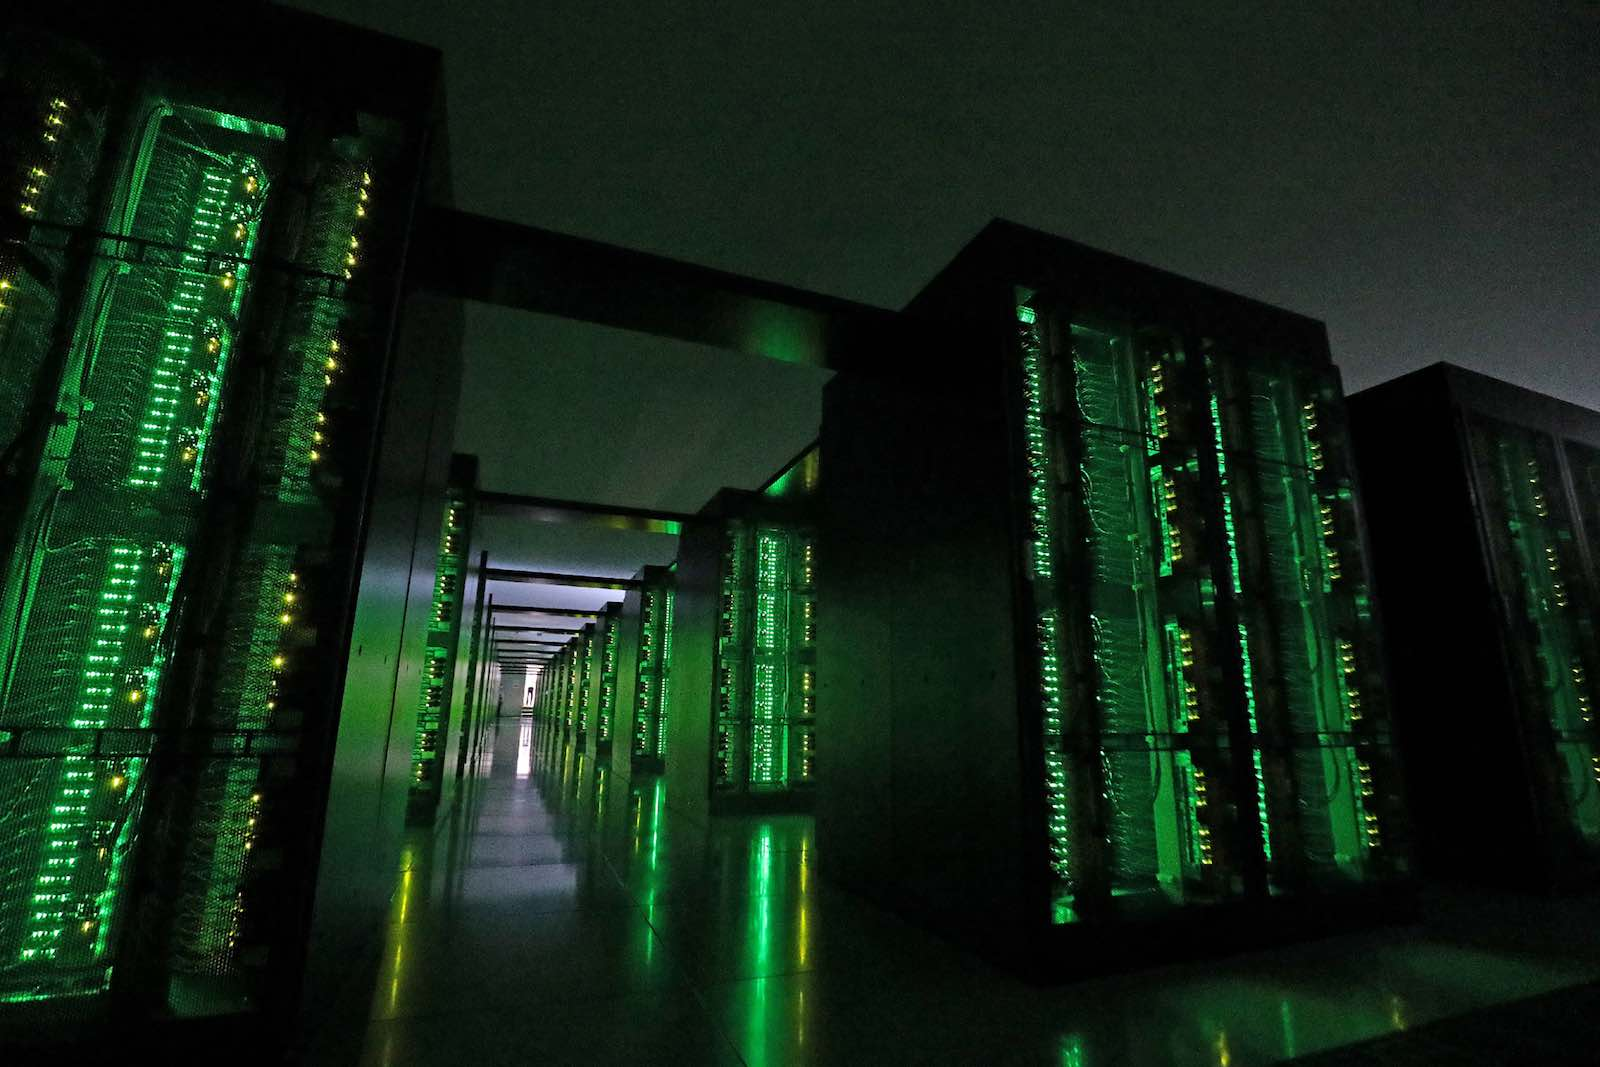 Japan's Fugaku supercomputer at the Riken Center for Computational Science in Kobe (STR via Getty Images)